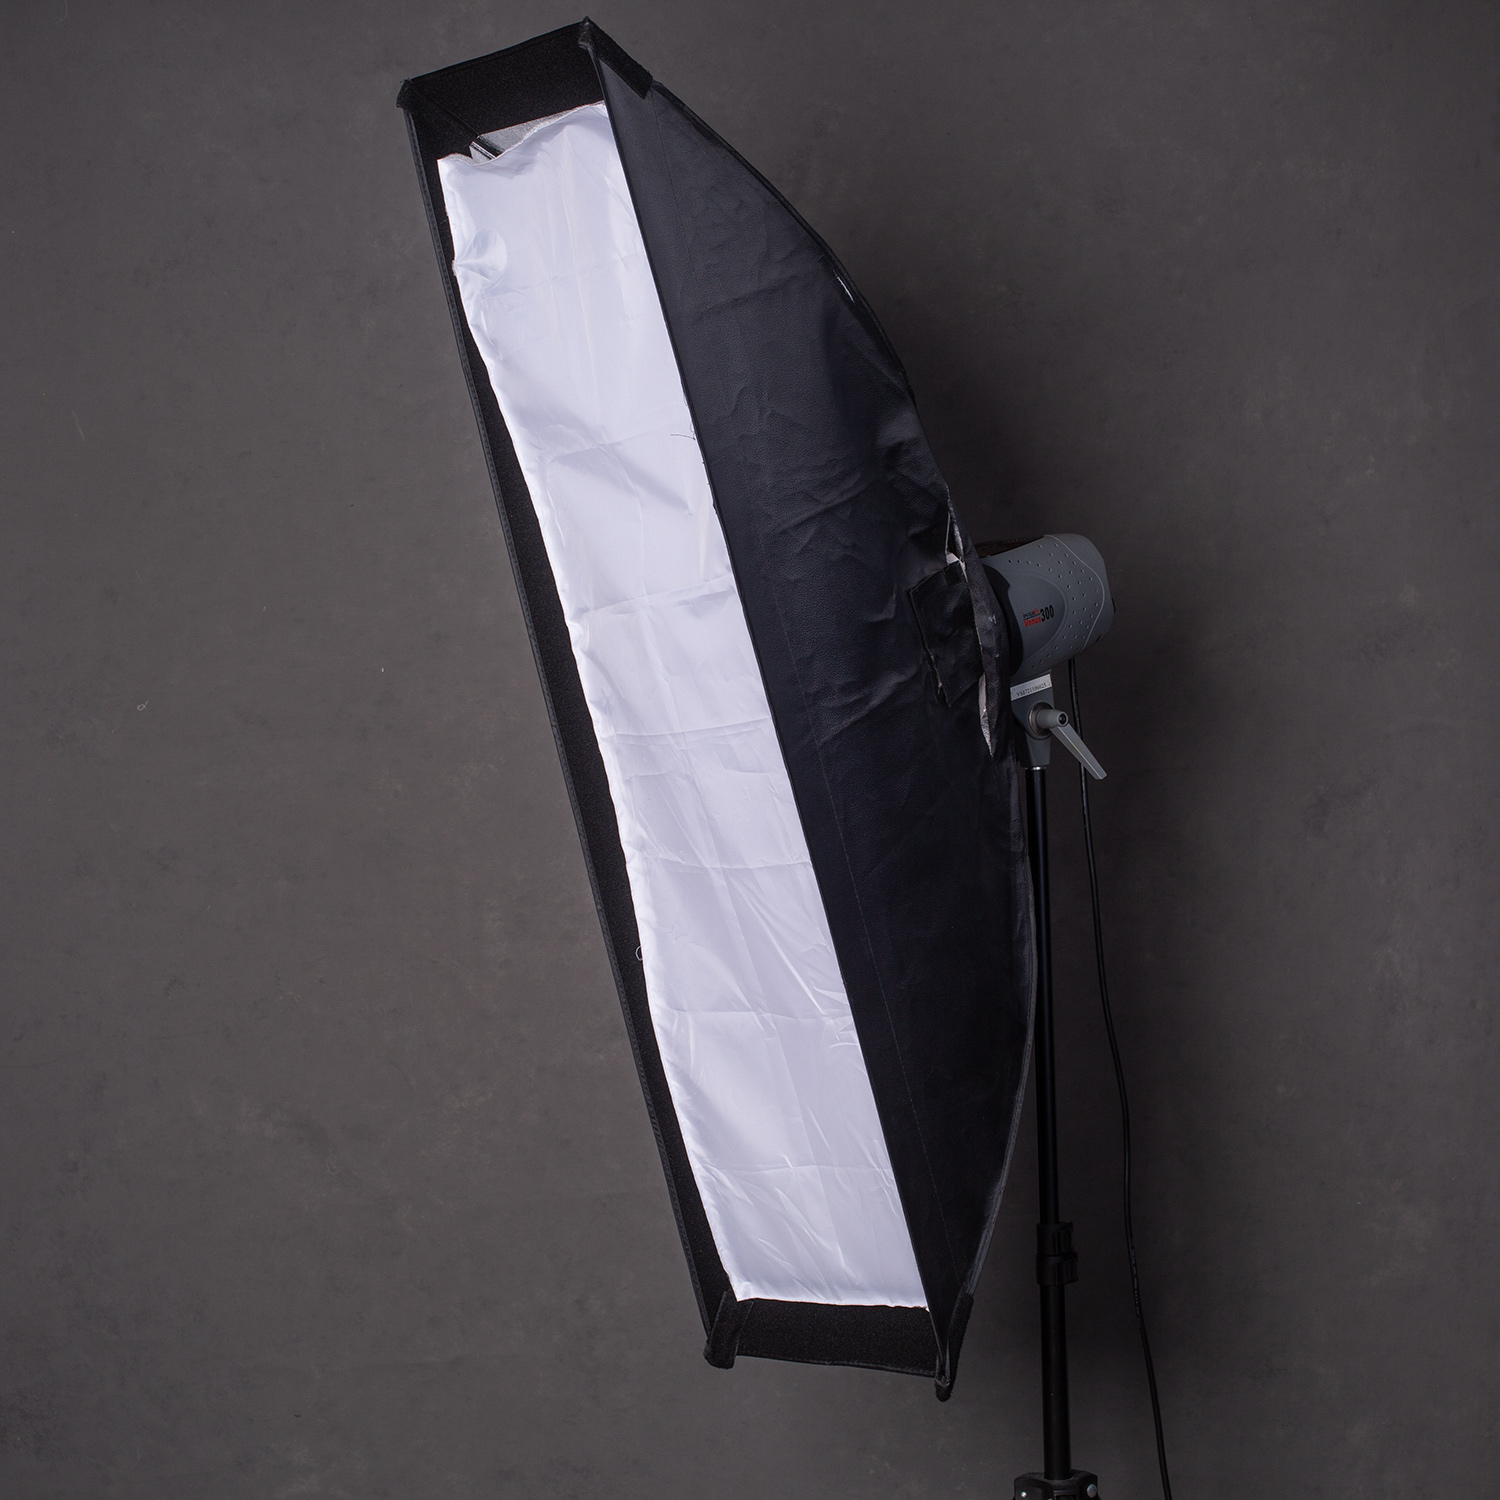 Image: Striplights are a useful type of softbox that offer very directional light.